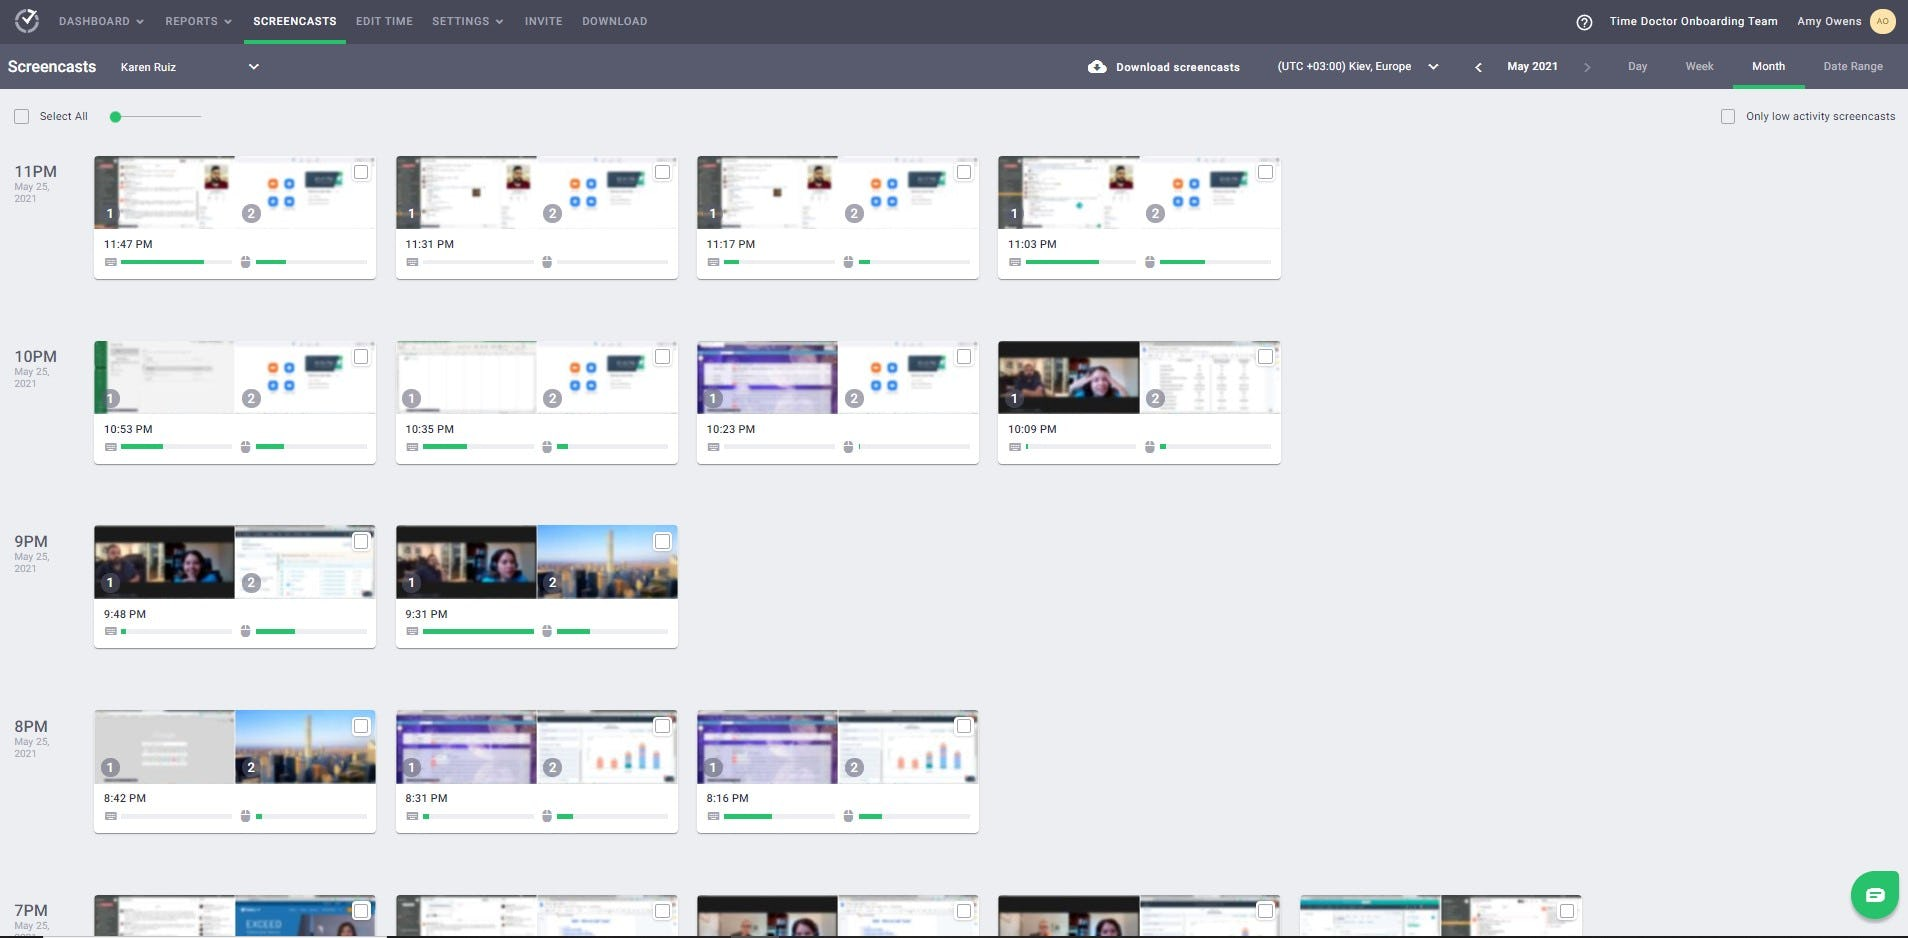 Time Doctor Software - Time Doctor Screencasts